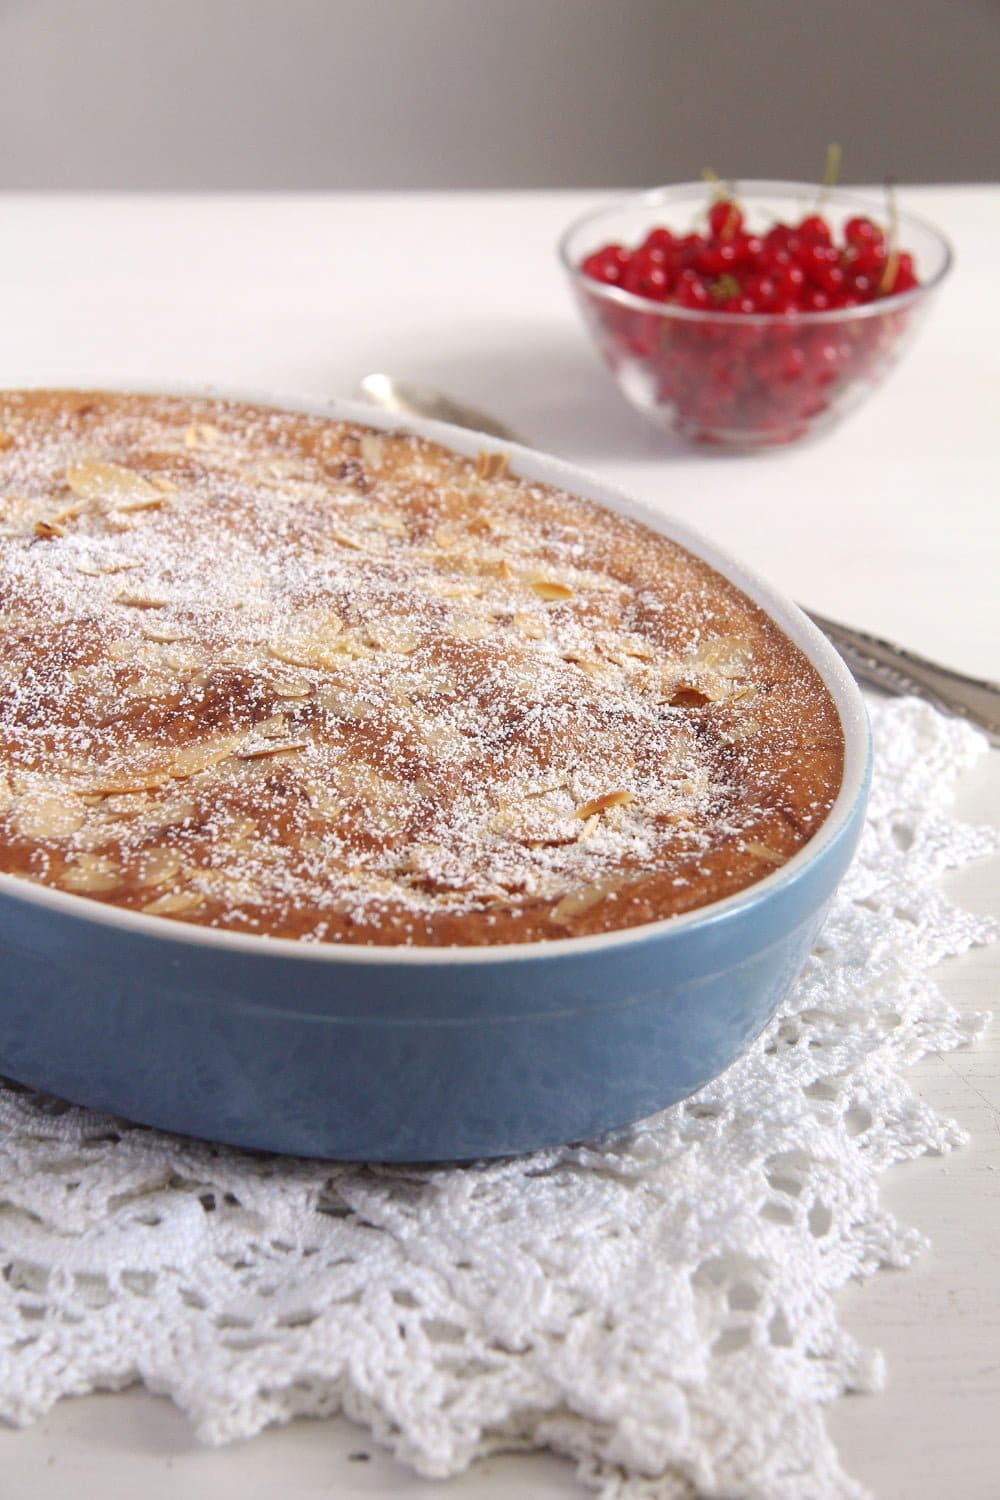 Red Currant Casserole Cake